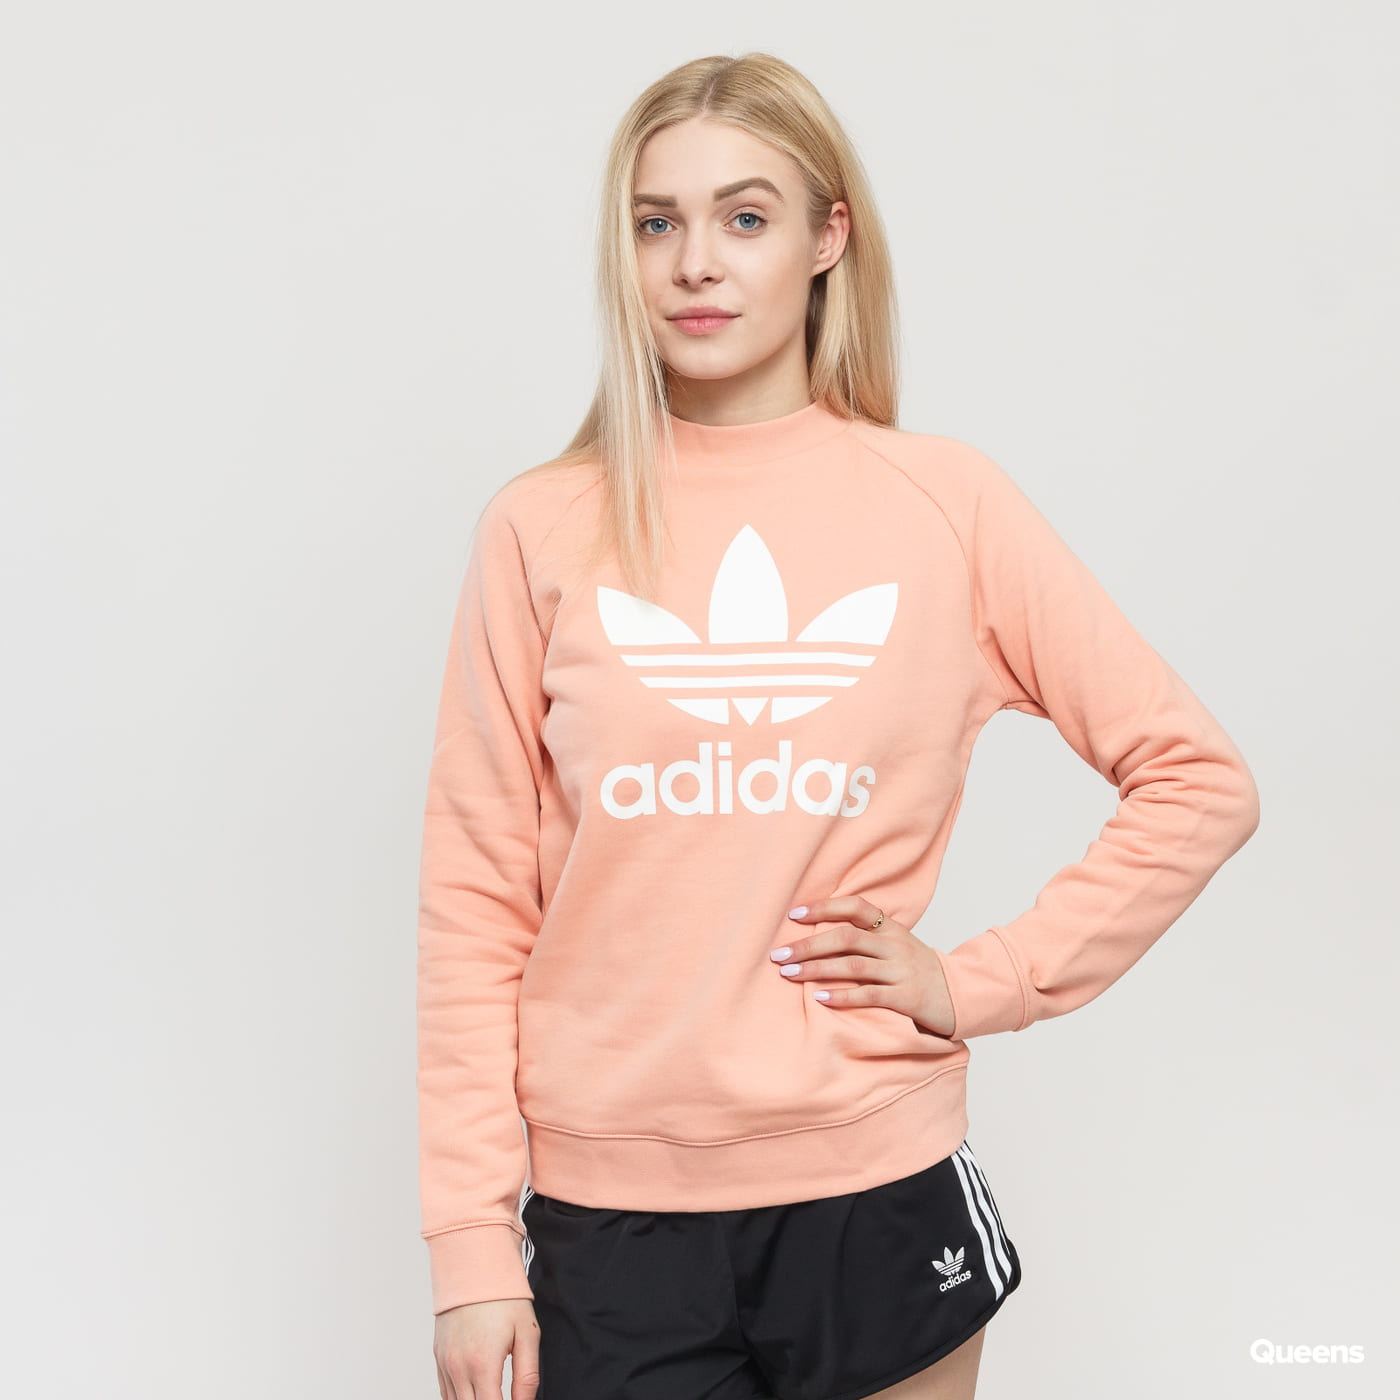 adidas Originals Women CREW Sweatshirt orange 100% cotton